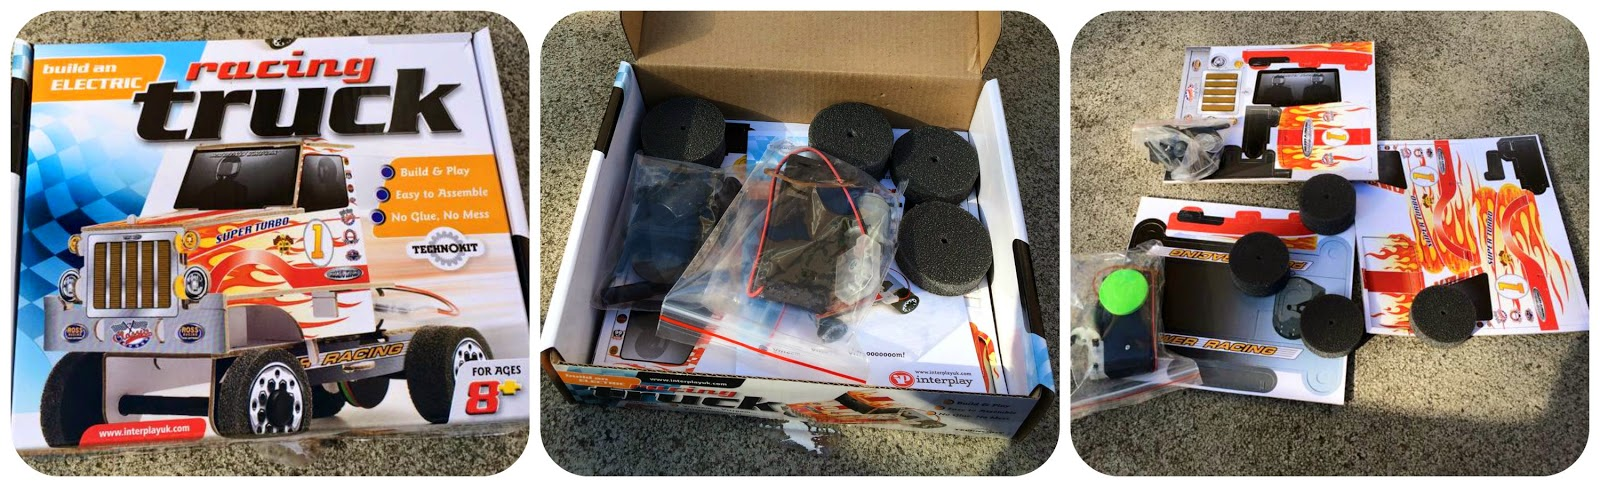 Racing Truck Technokit from Interplay - what's in the box